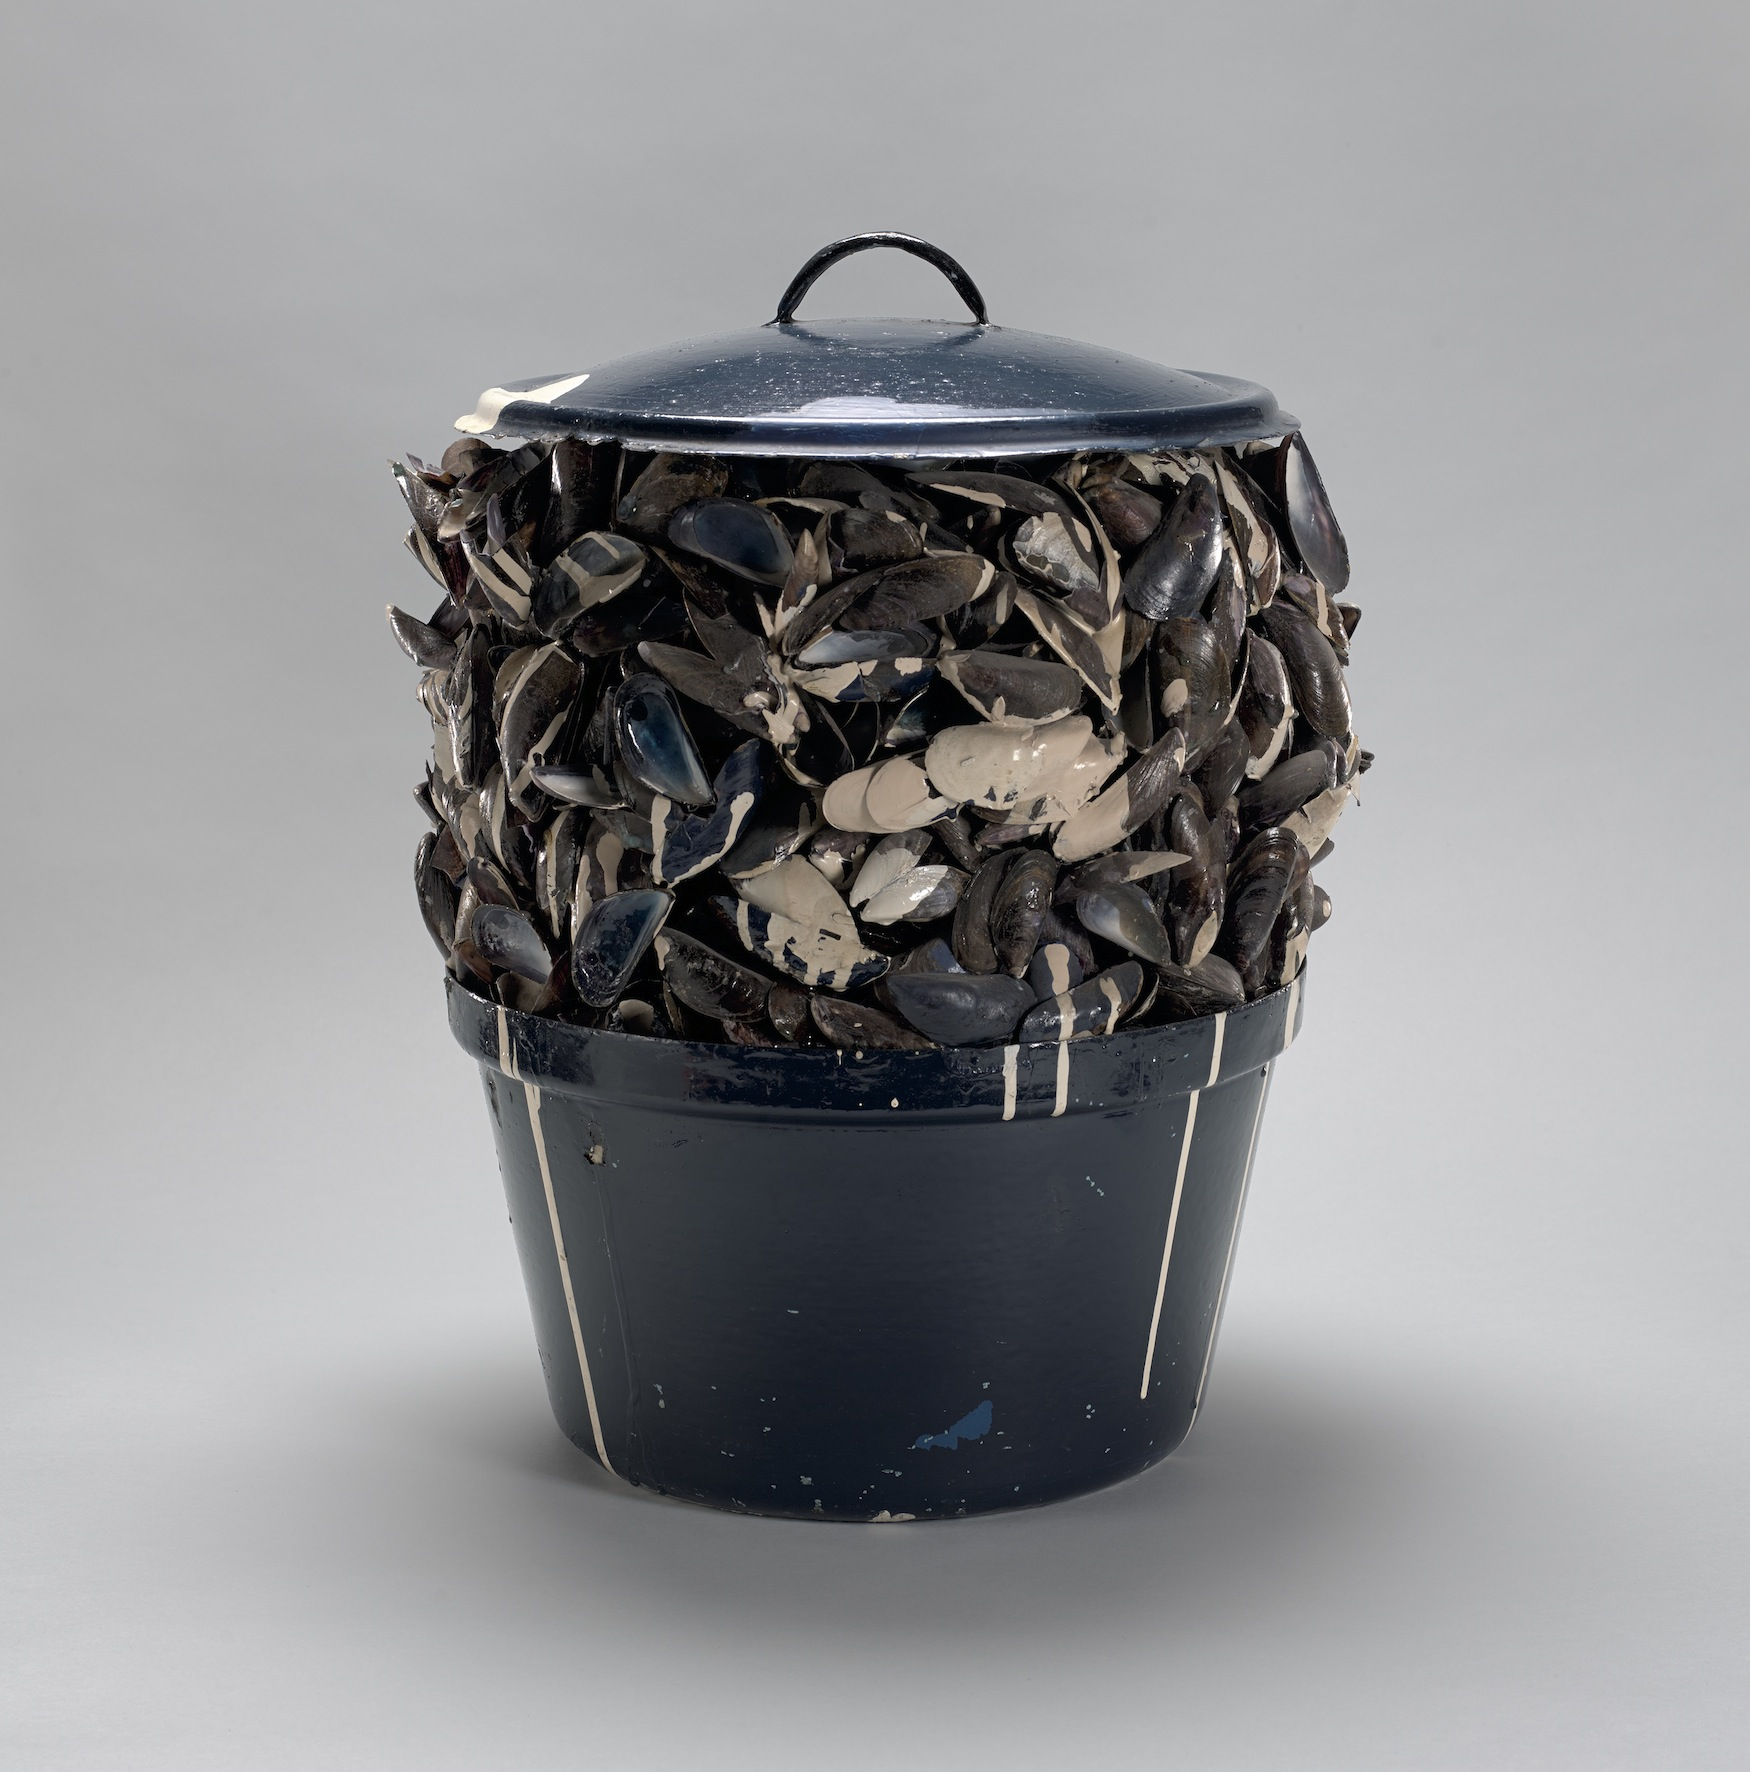 Marcel Broodthaers,  Moules sauce blanche , 1967